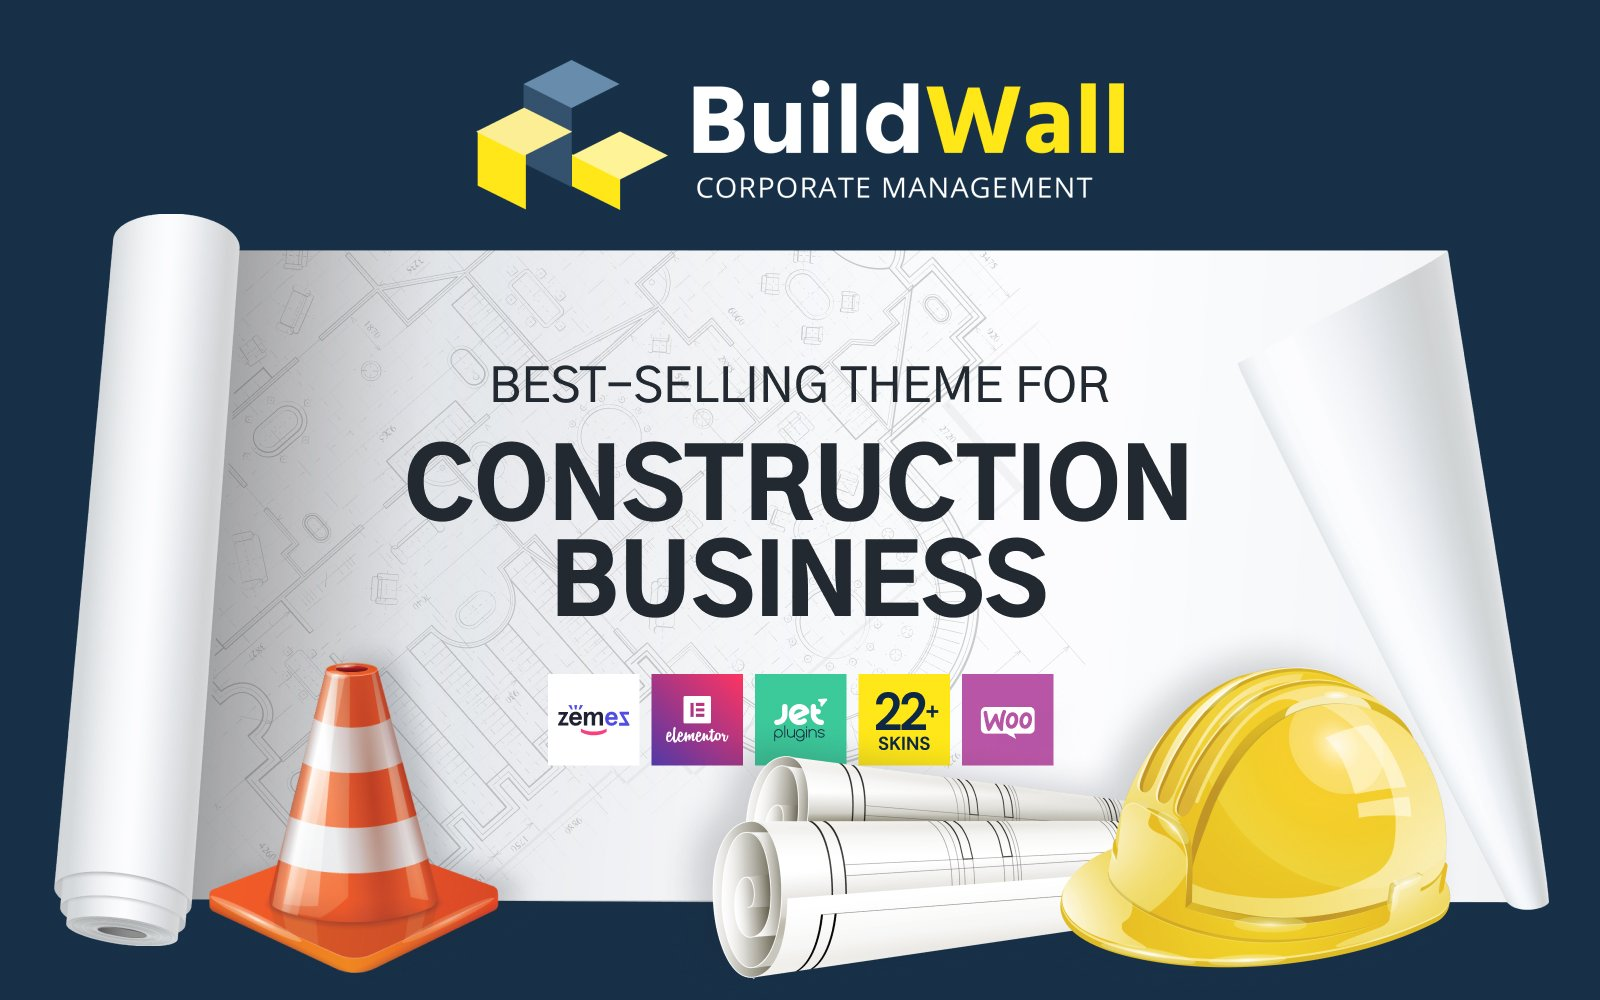 Reszponzív BuildWall - Construction Company Multipurpose WordPress Theme WordPress sablon 53591